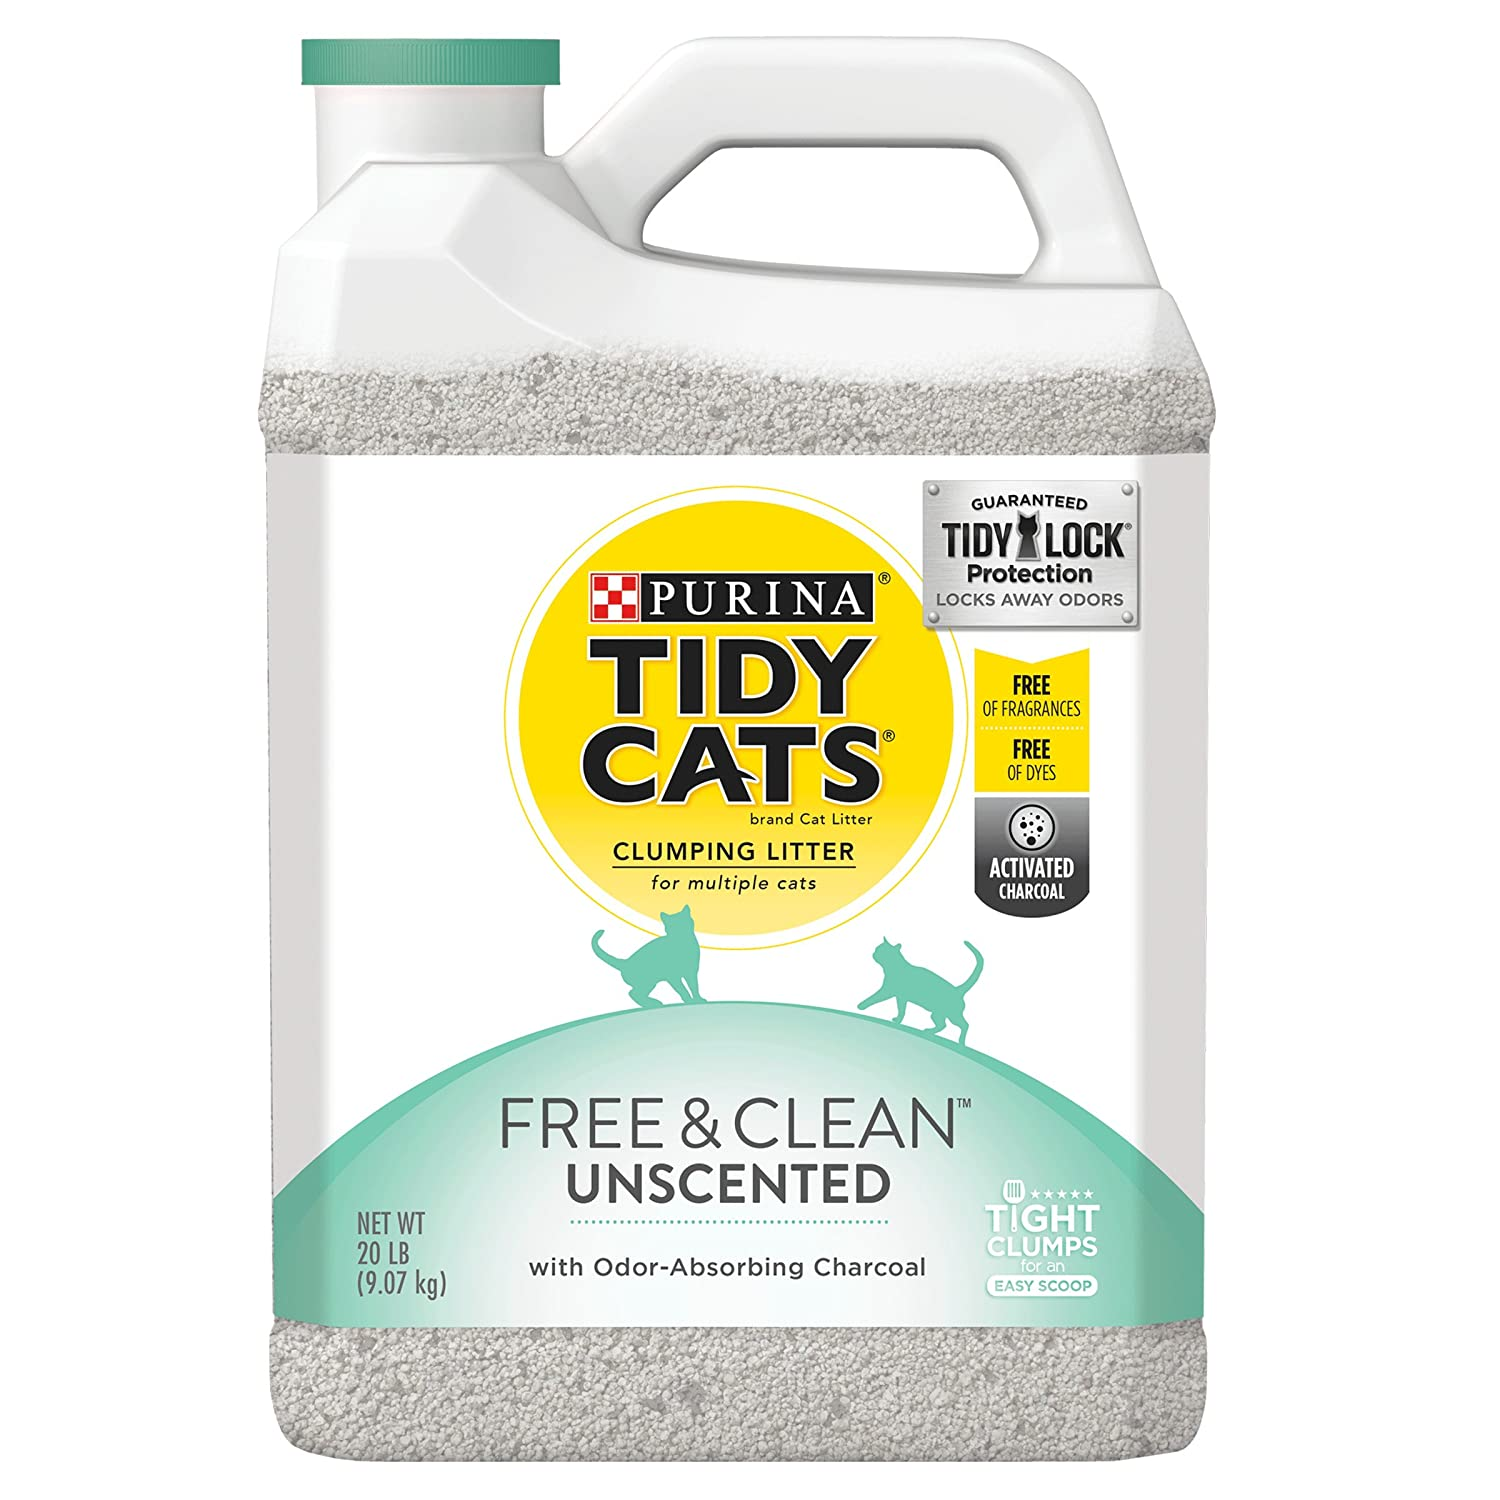 20 lb. Pail (Pack of 2) Purina Tidy Cats Free & Clean with TidyLock Predection Clumping Cat Litter Two (2) 20 lb. Jugs